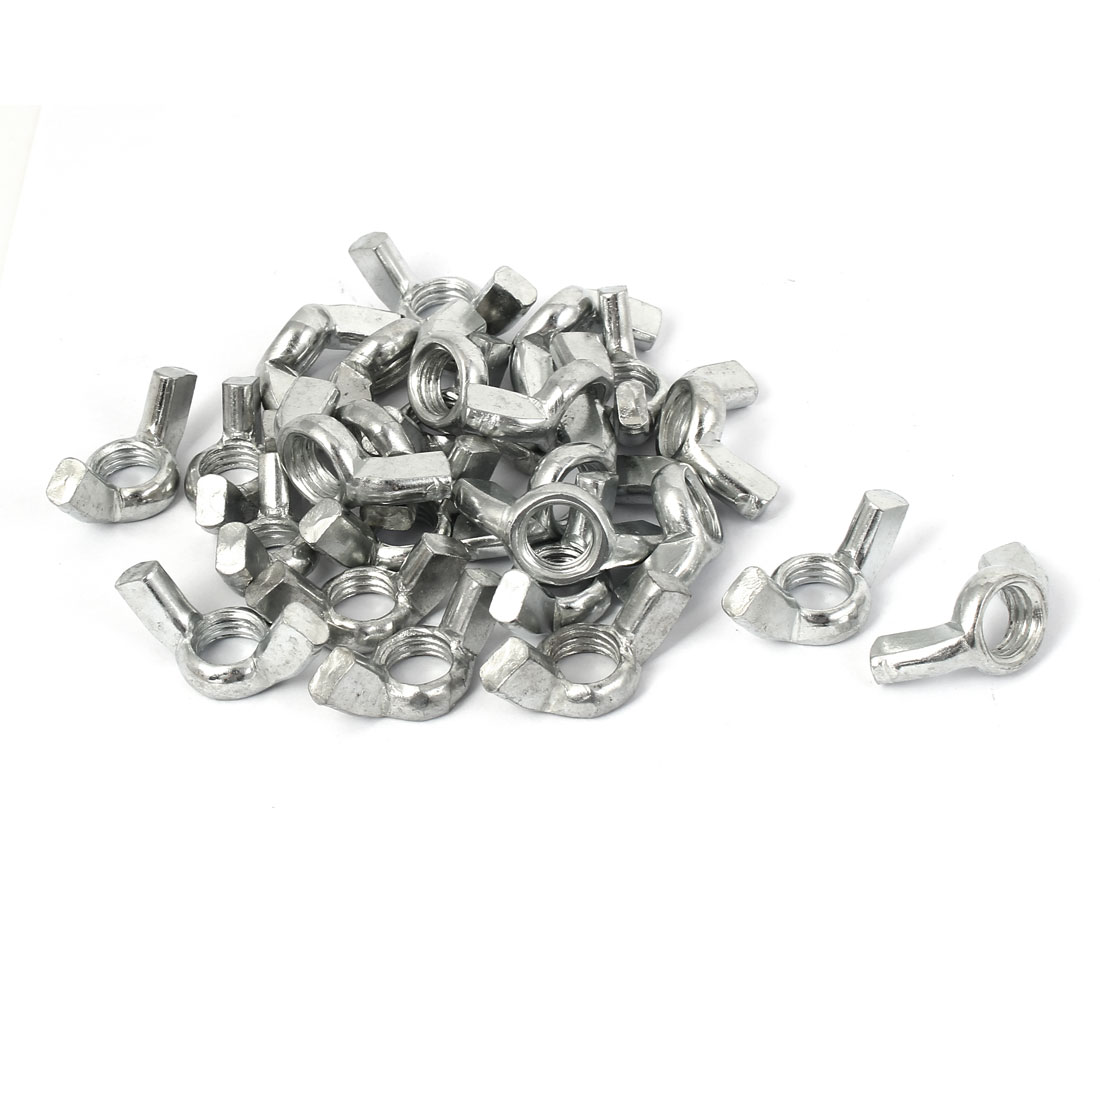 M12 Metal Coarse Female Thread Instal Tool Fastener Wing Nut 30pcs